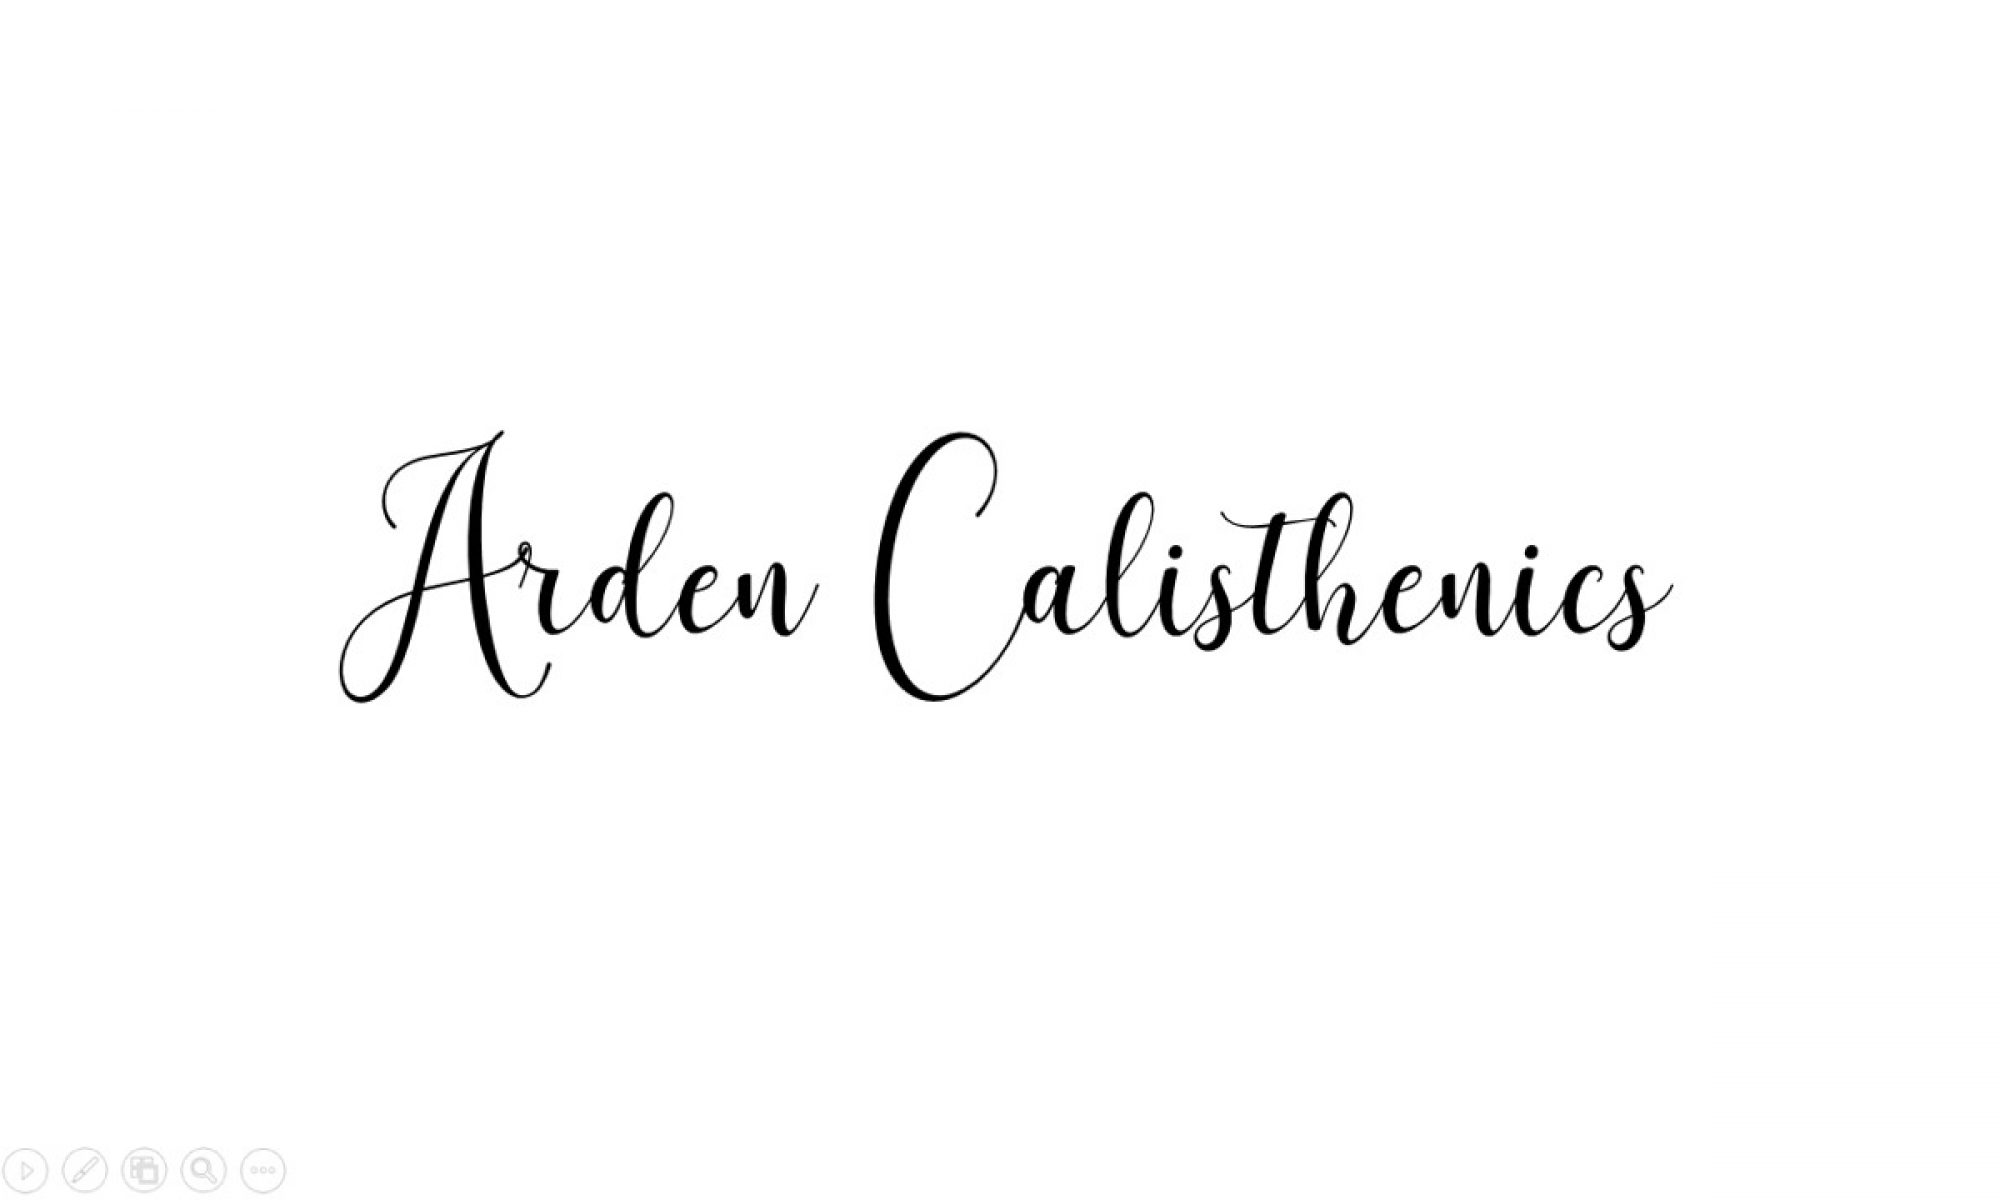 Arden Crescent Calisthenics Club Inc